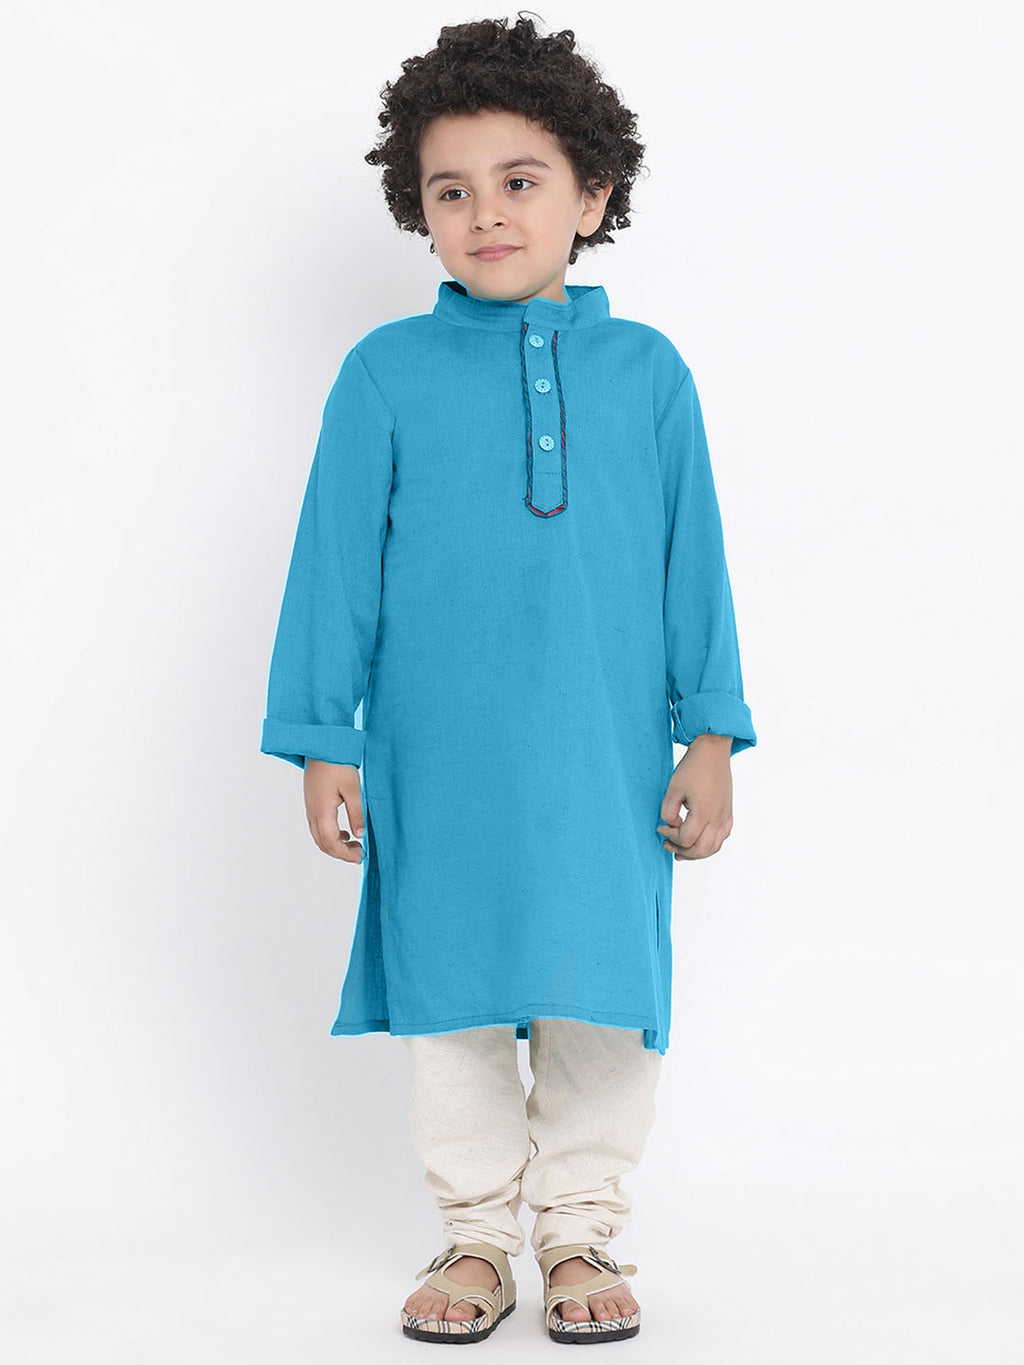 Karan5 Kurta Pajam For Boys